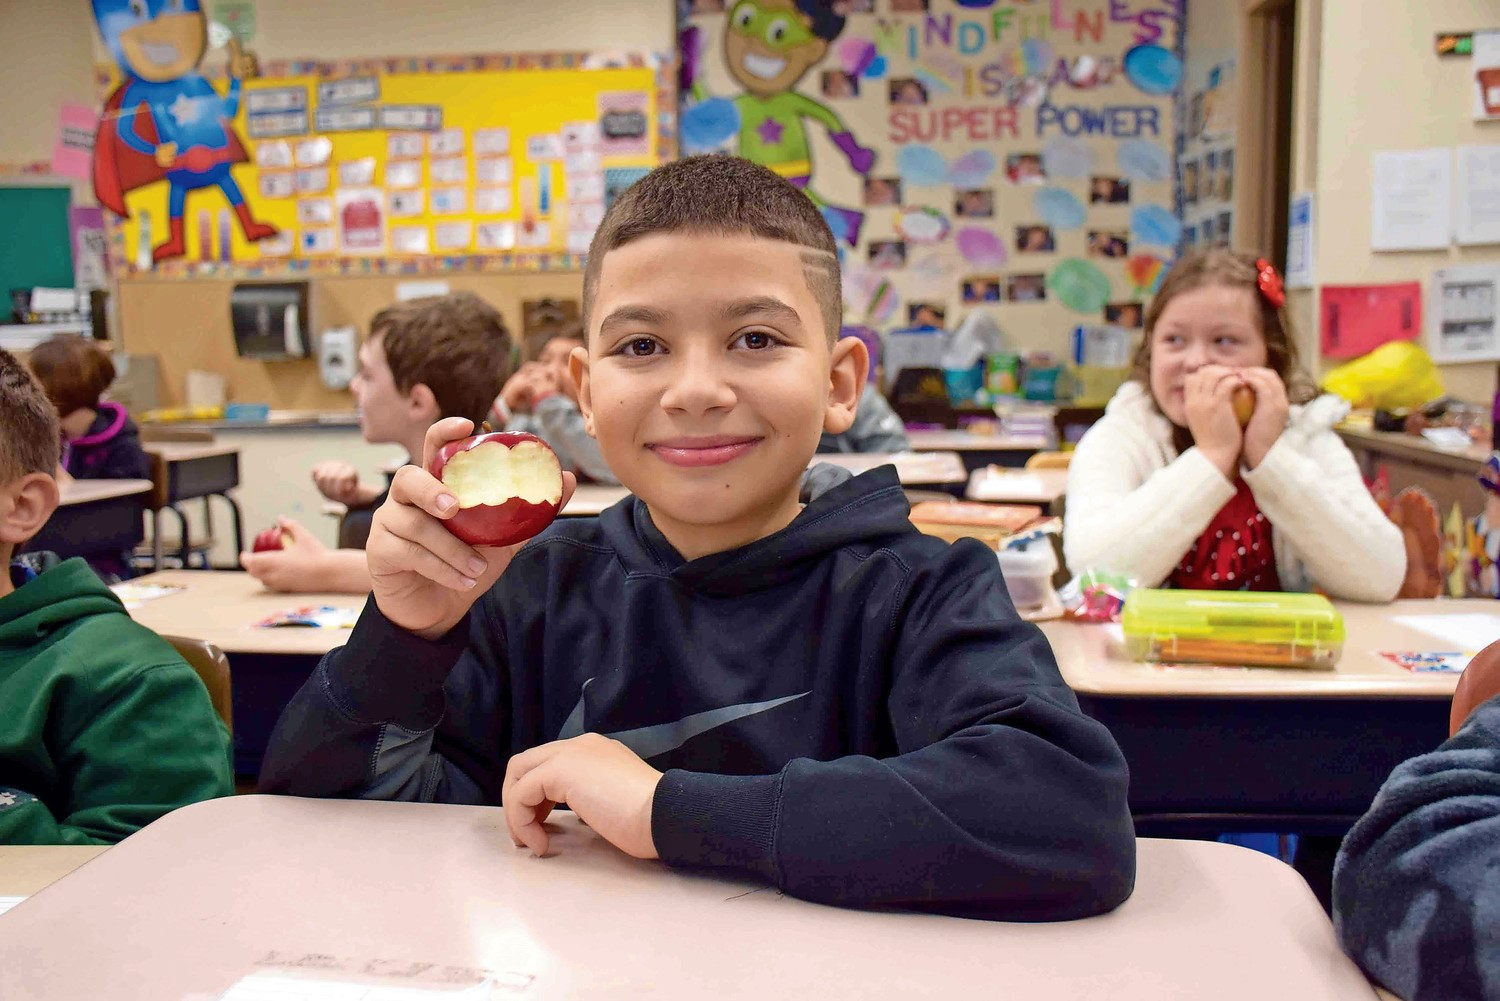 Fourth-grader Steve Mavrommatis learned how to mindfully eat an apple.